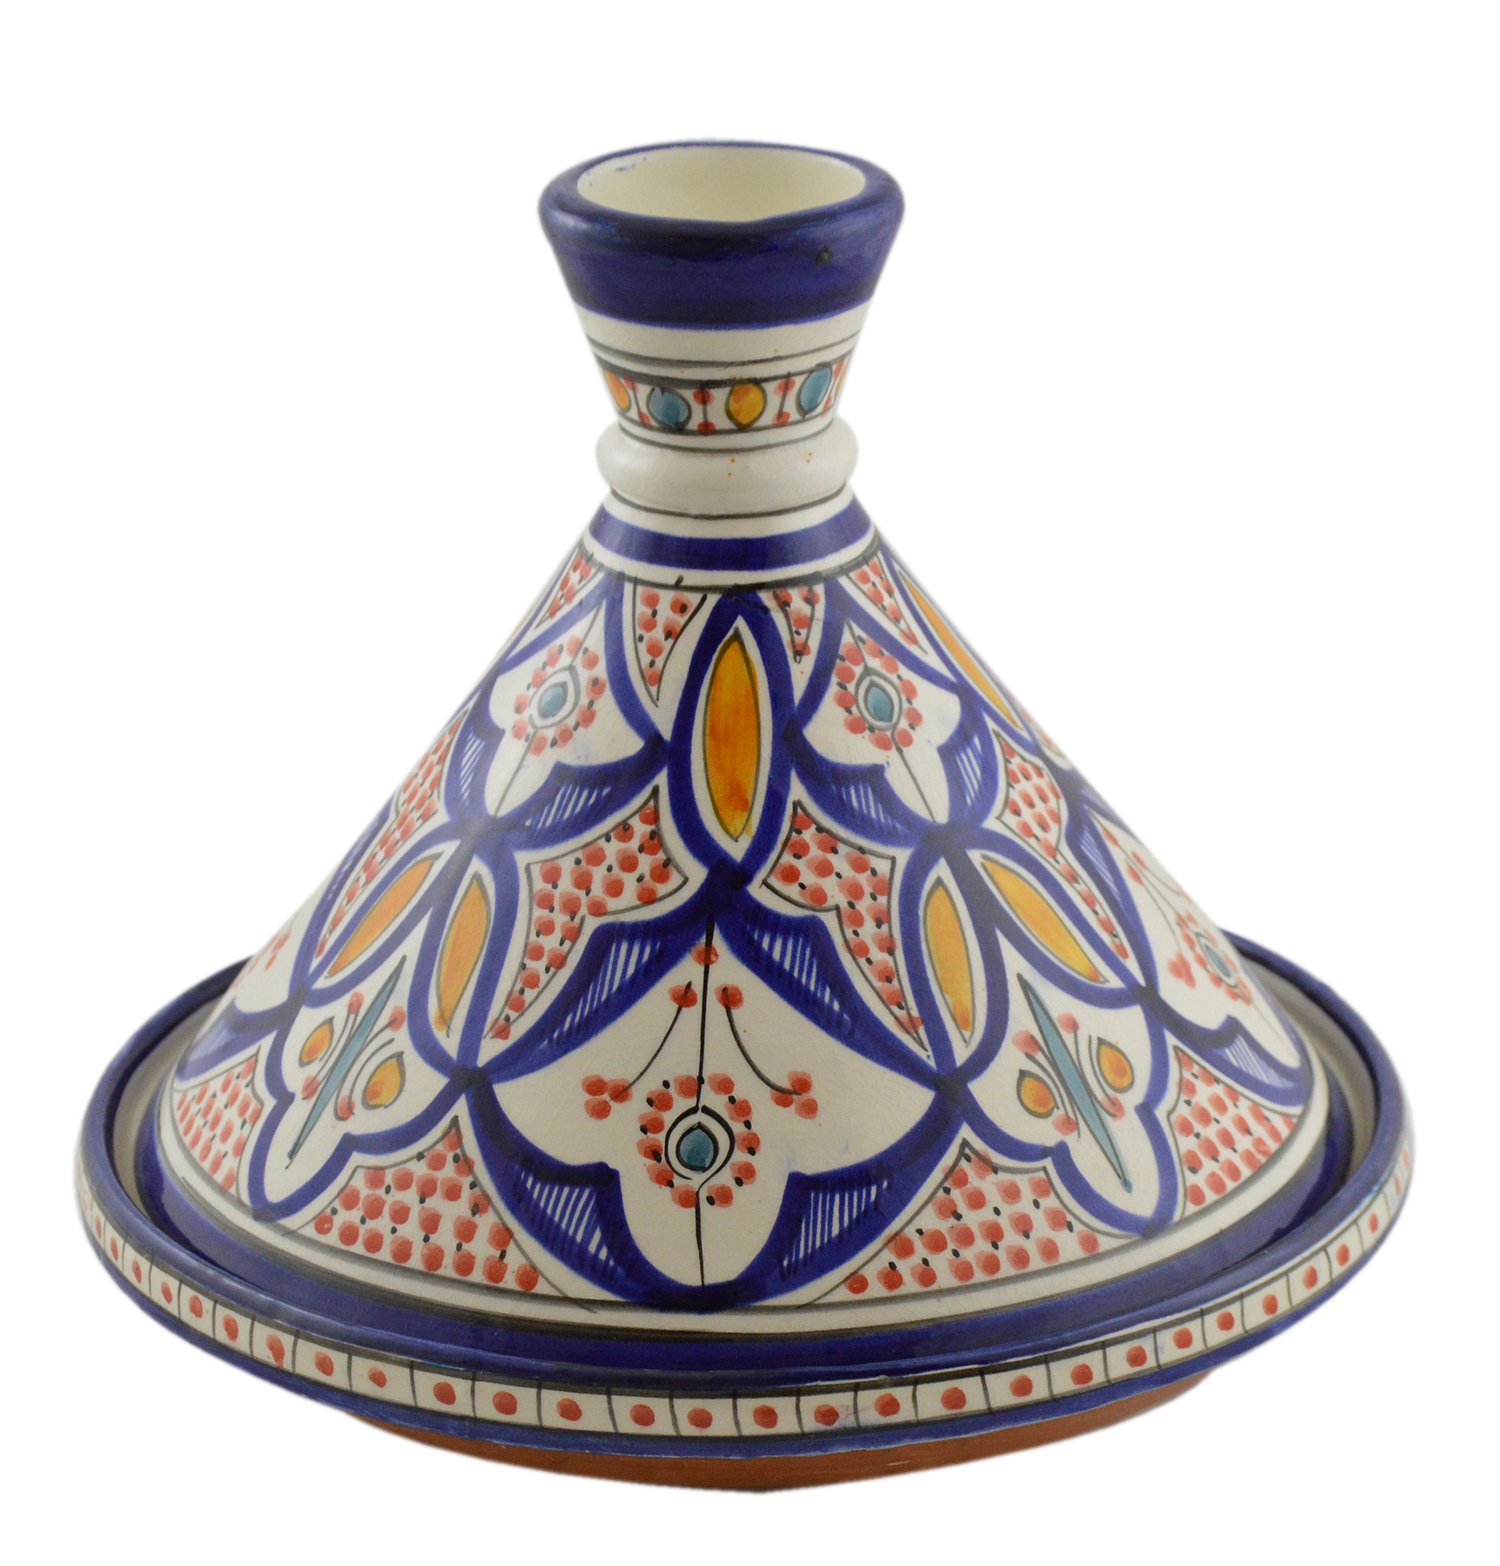 Moroccan Handmade Serving Tagine Exquisite Ceramic With Vivid colors Traditional 12 inches Across XLarge by Serving Tagines